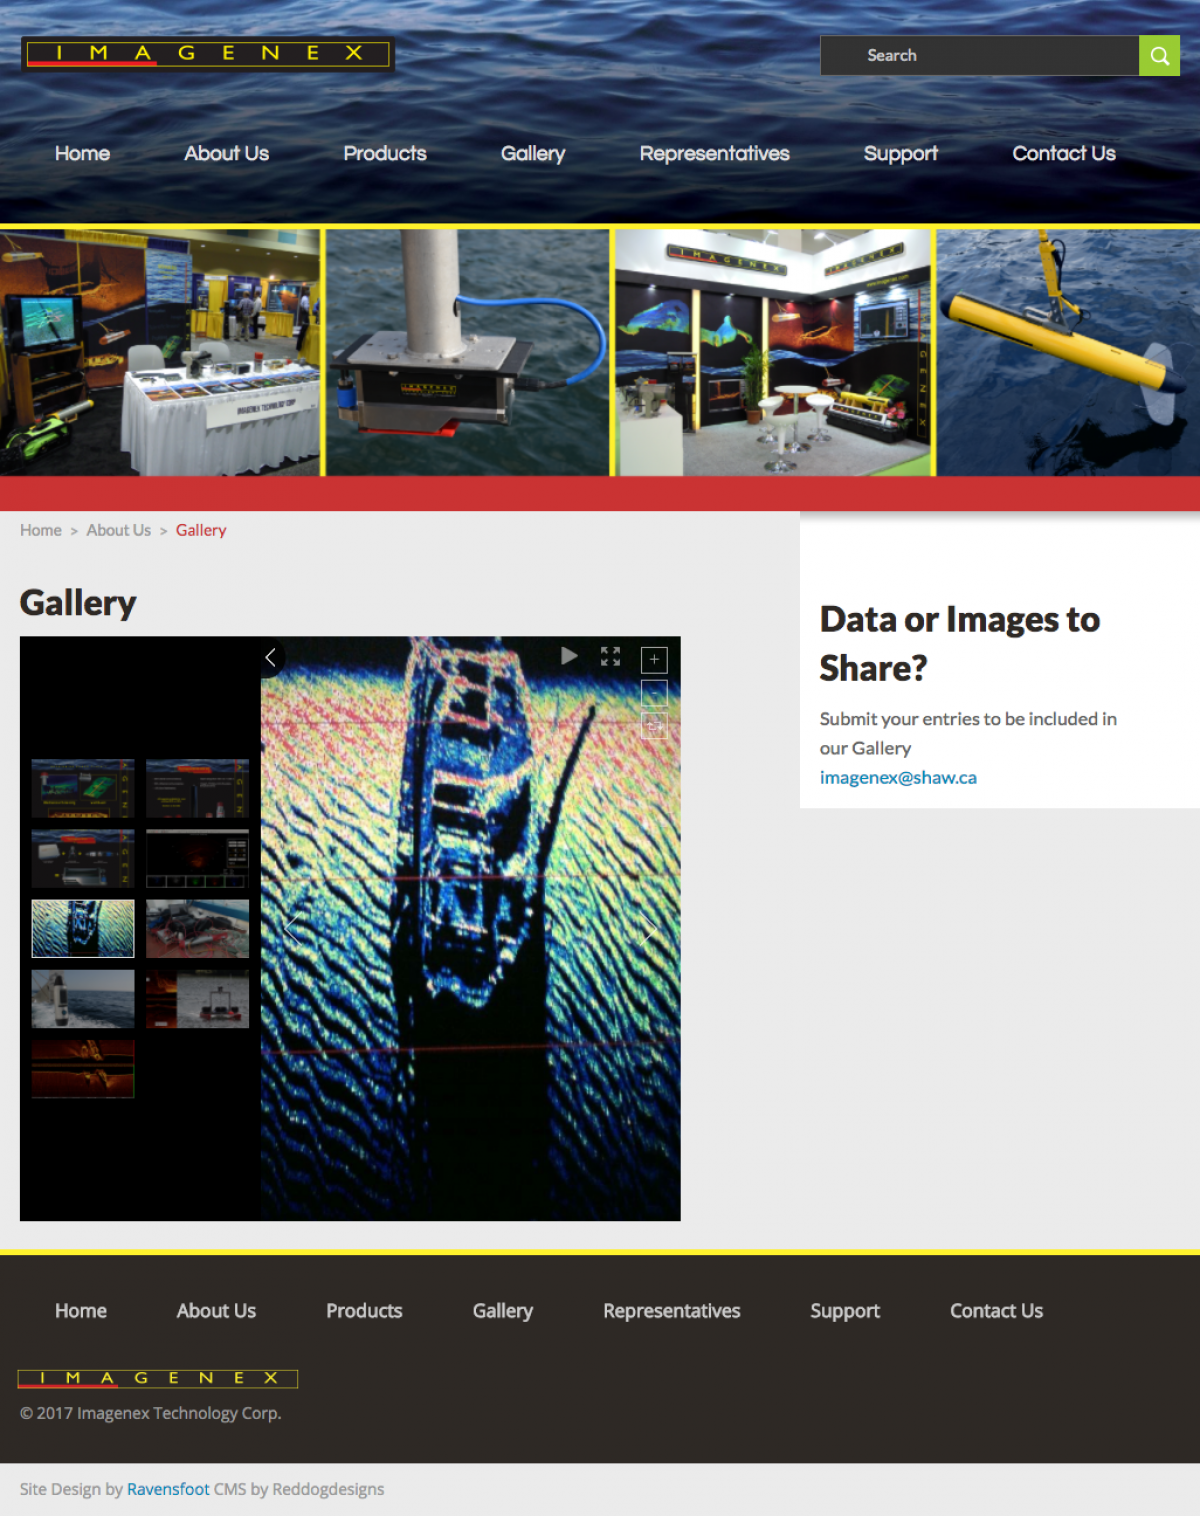 Imagenex Gallery Page